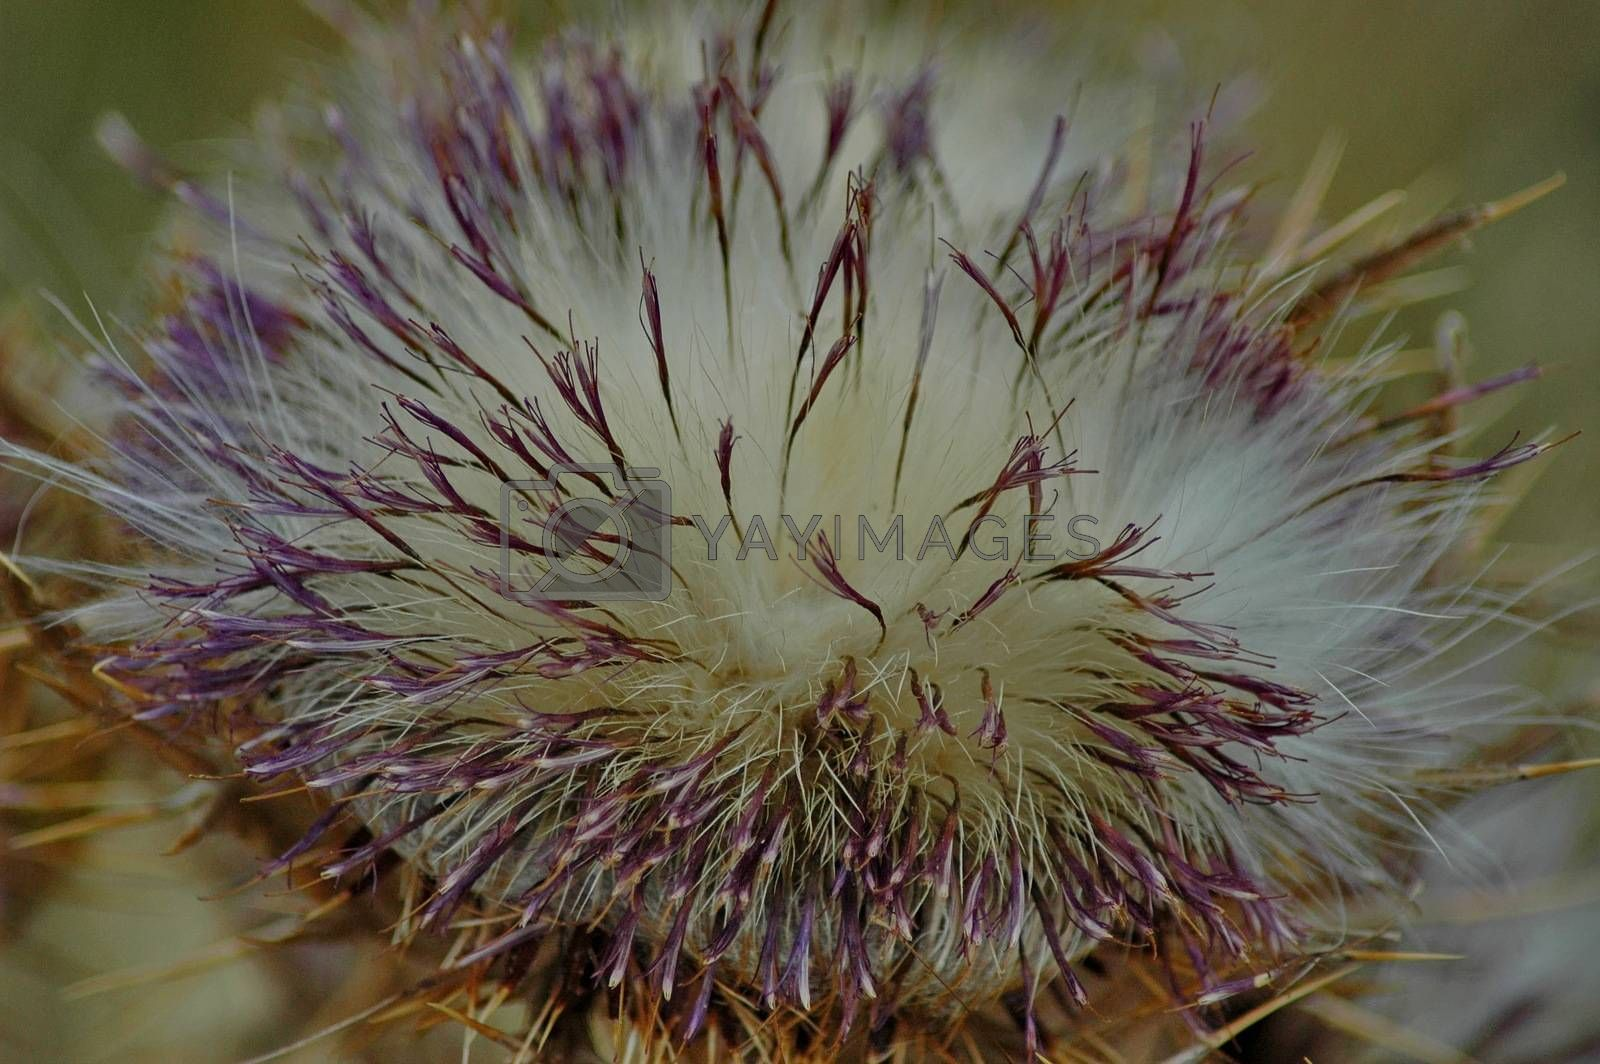 Royalty free image of Beautiful blossom thistle by intsys